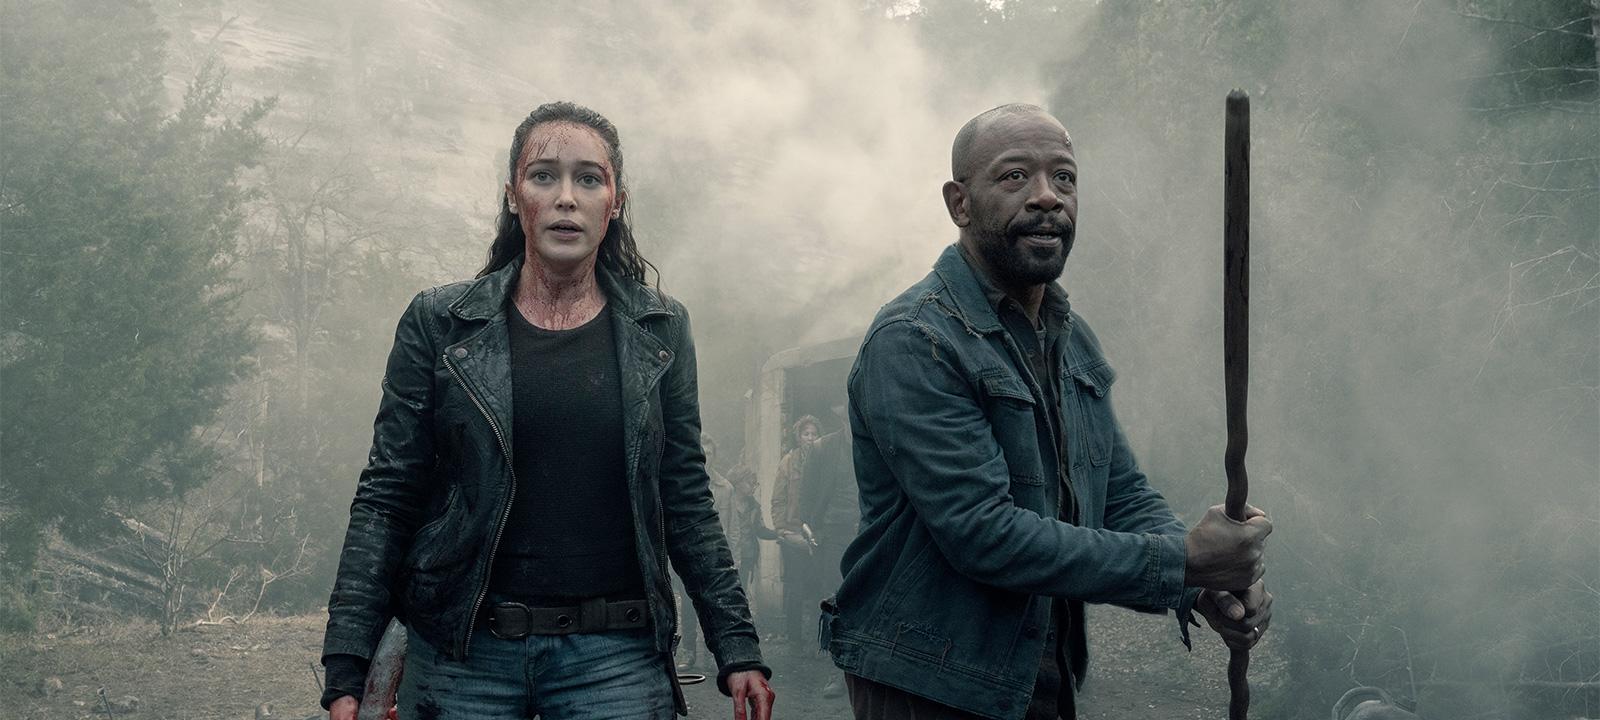 fear-the-walking-dead-season-5-alicia-debnam-carey-morgan-james-800×600